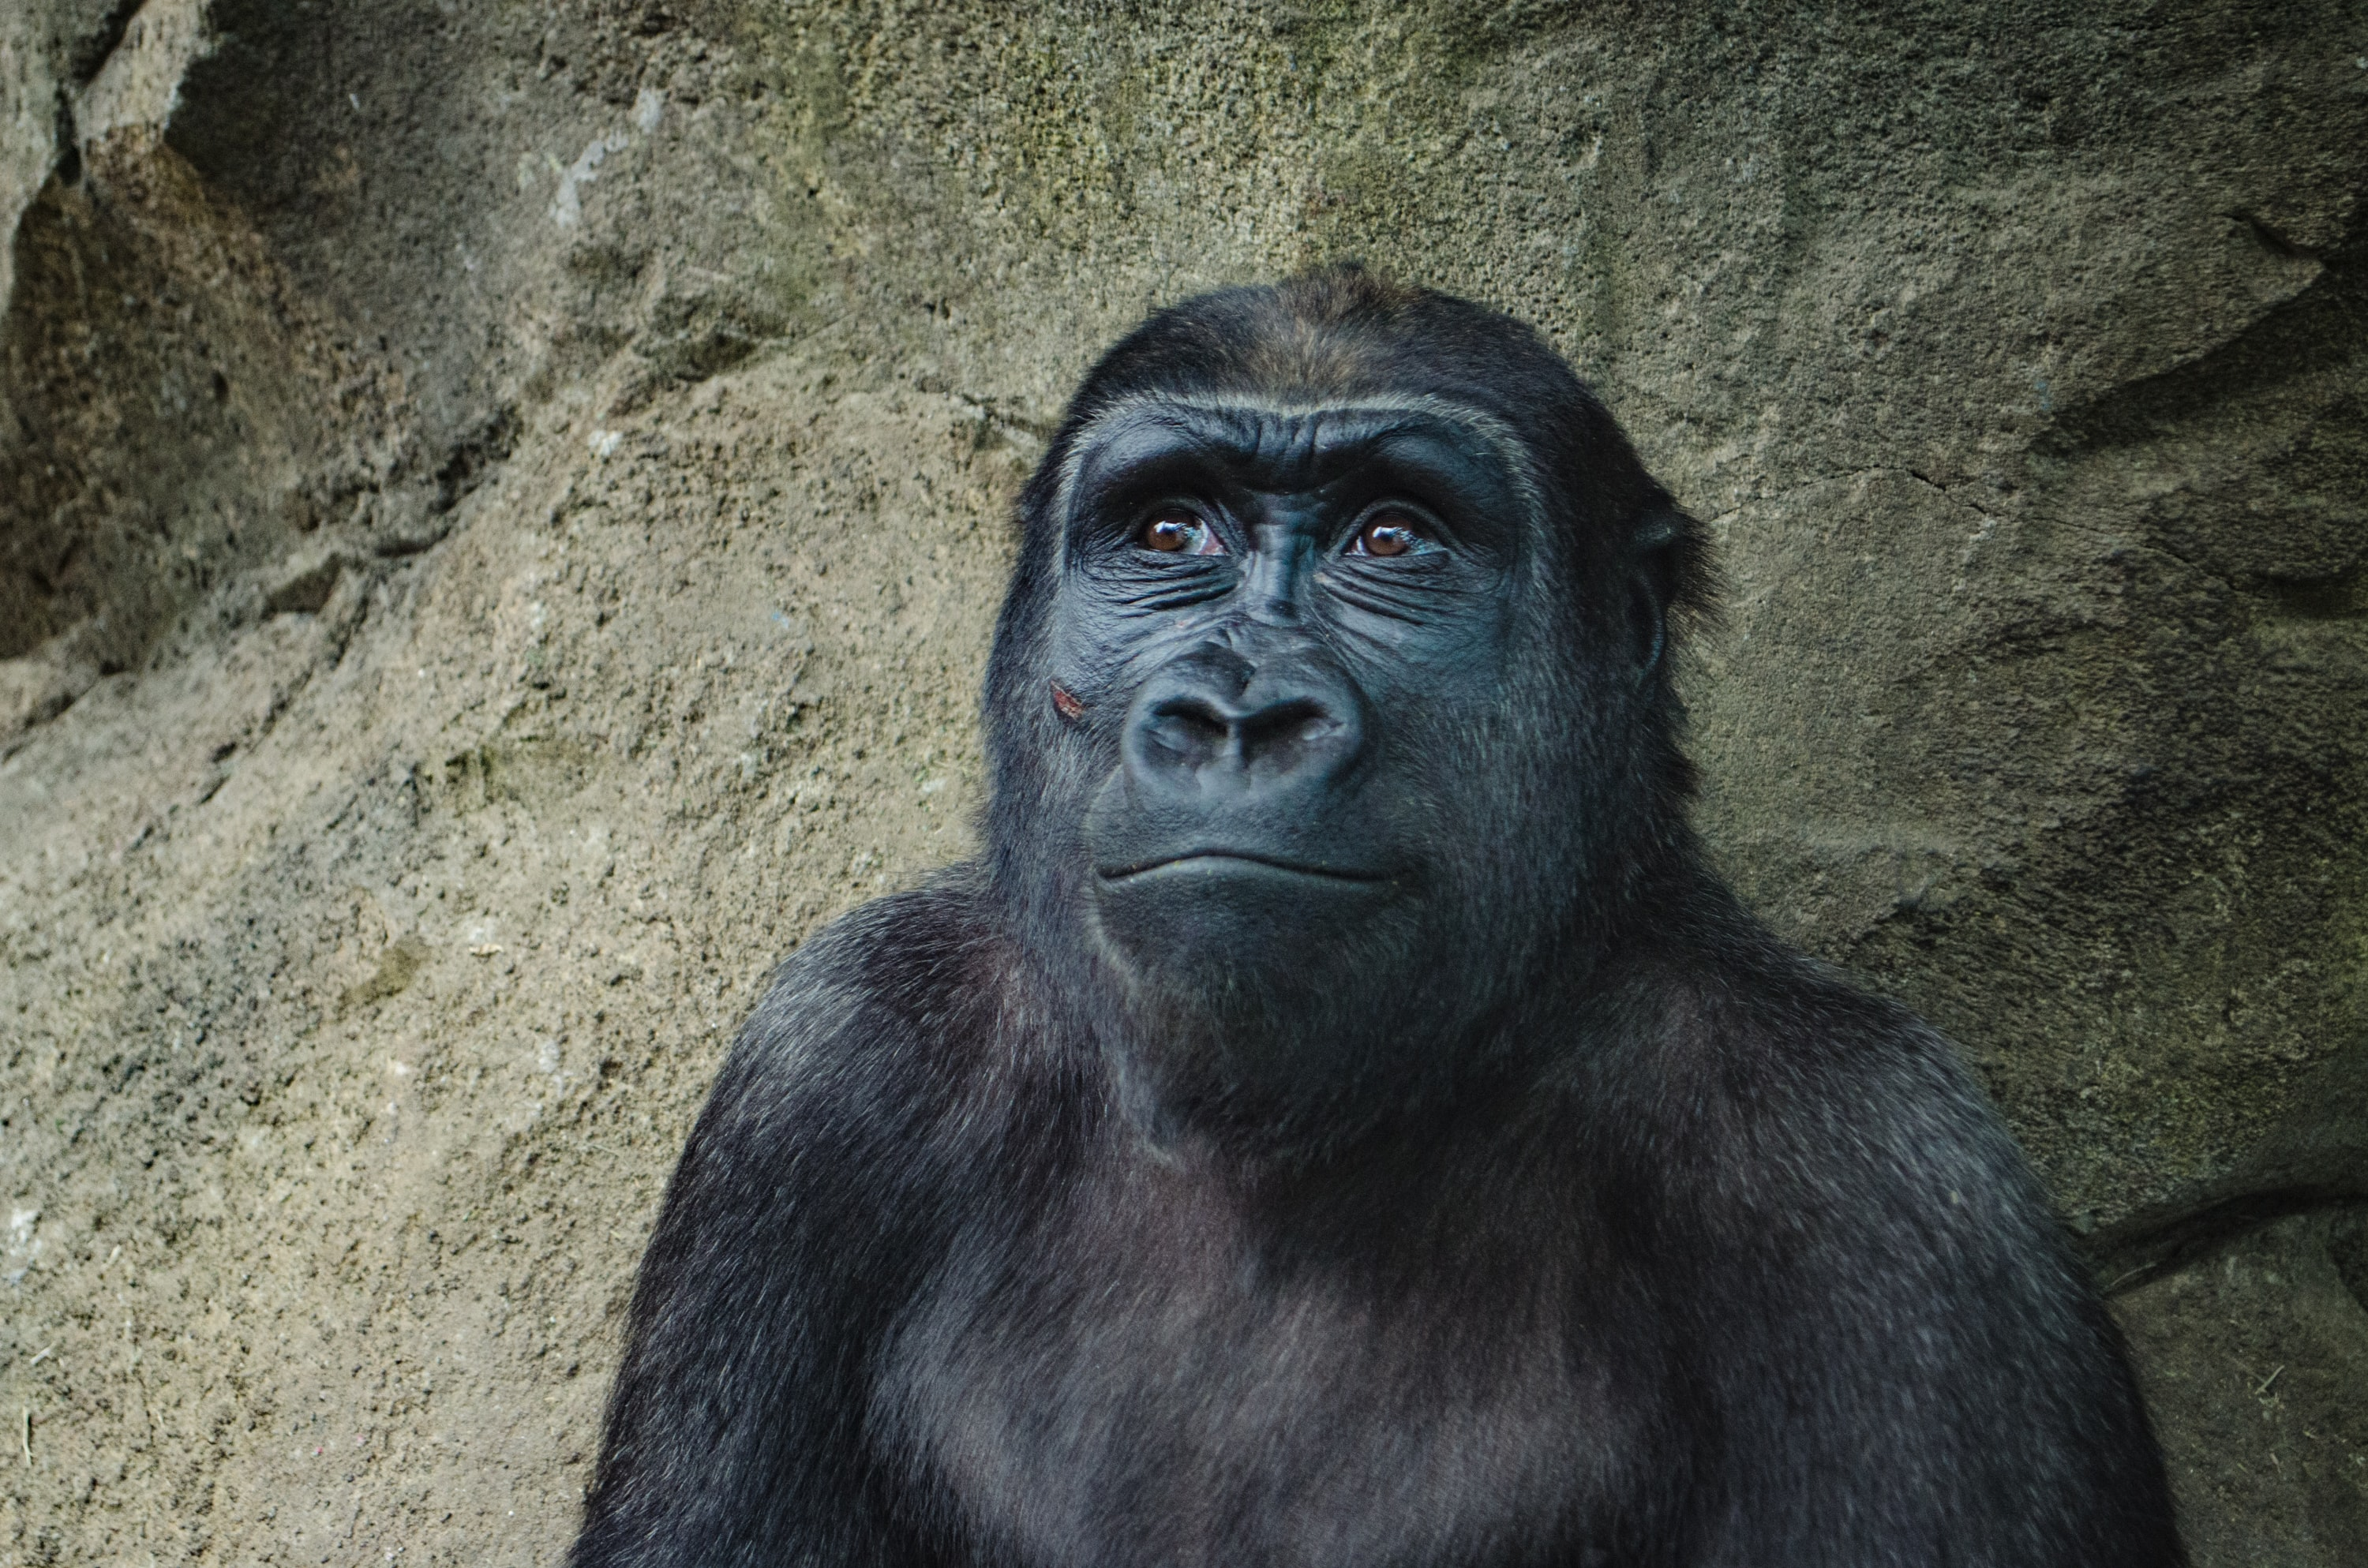 Curious gorilla sitting alone smiles